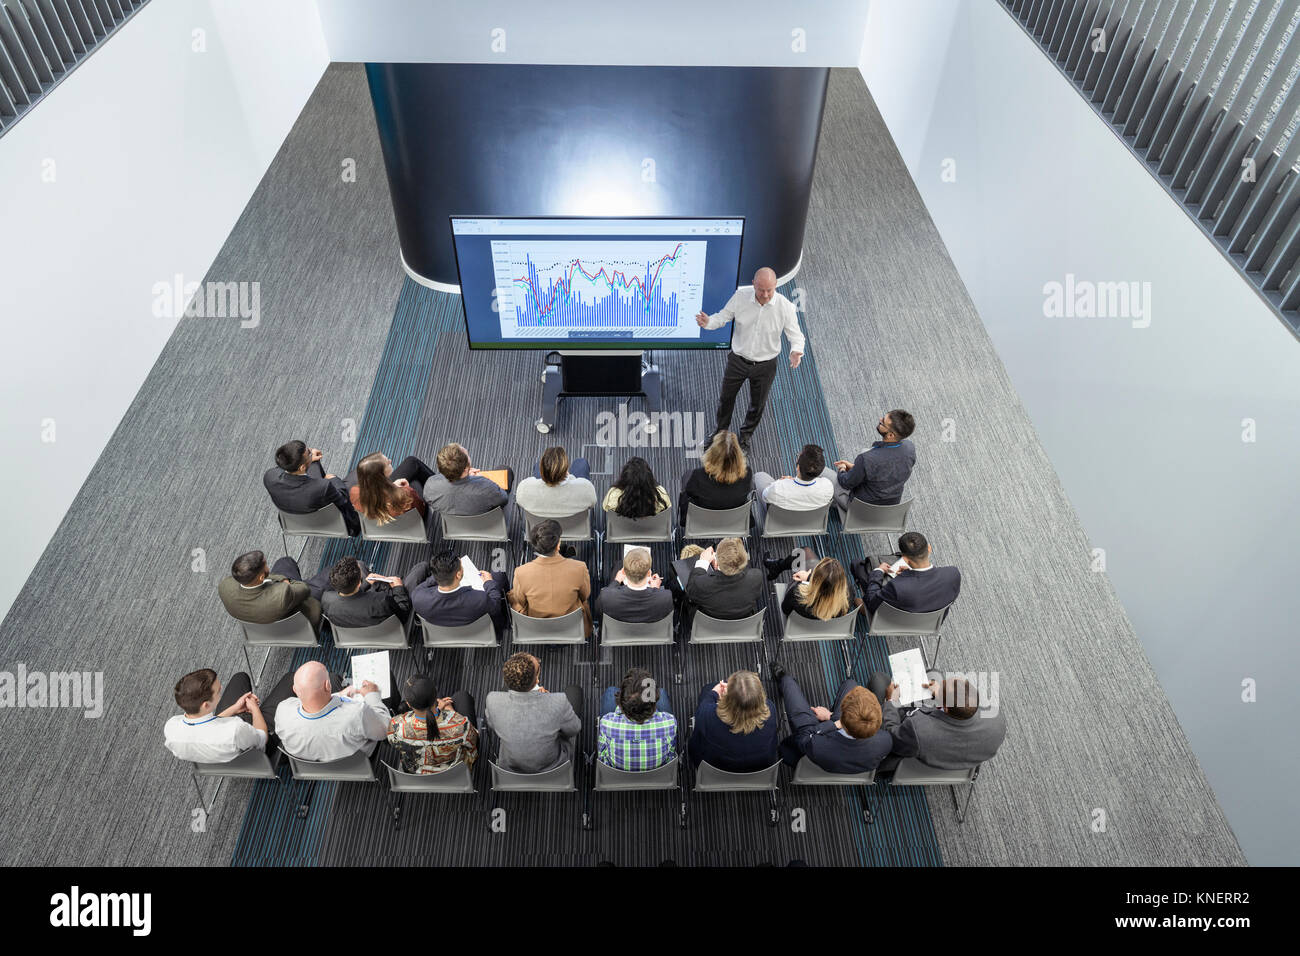 Instructor giving lecture to audience in railway engineering facility - Stock Image